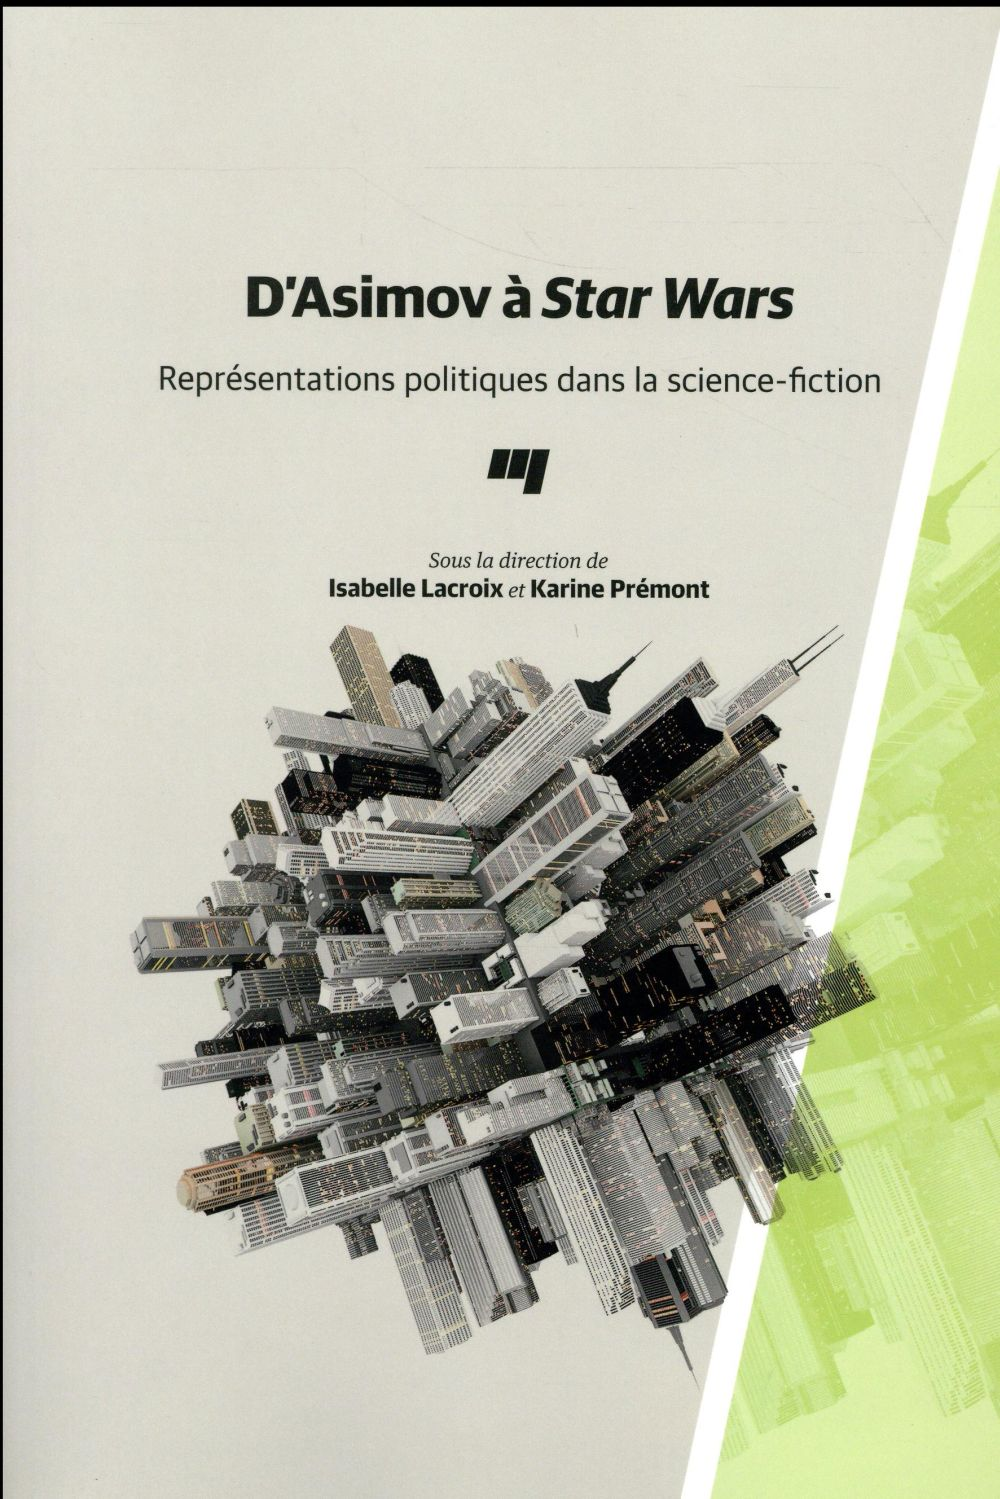 D'ASIMOV A STAR WARS